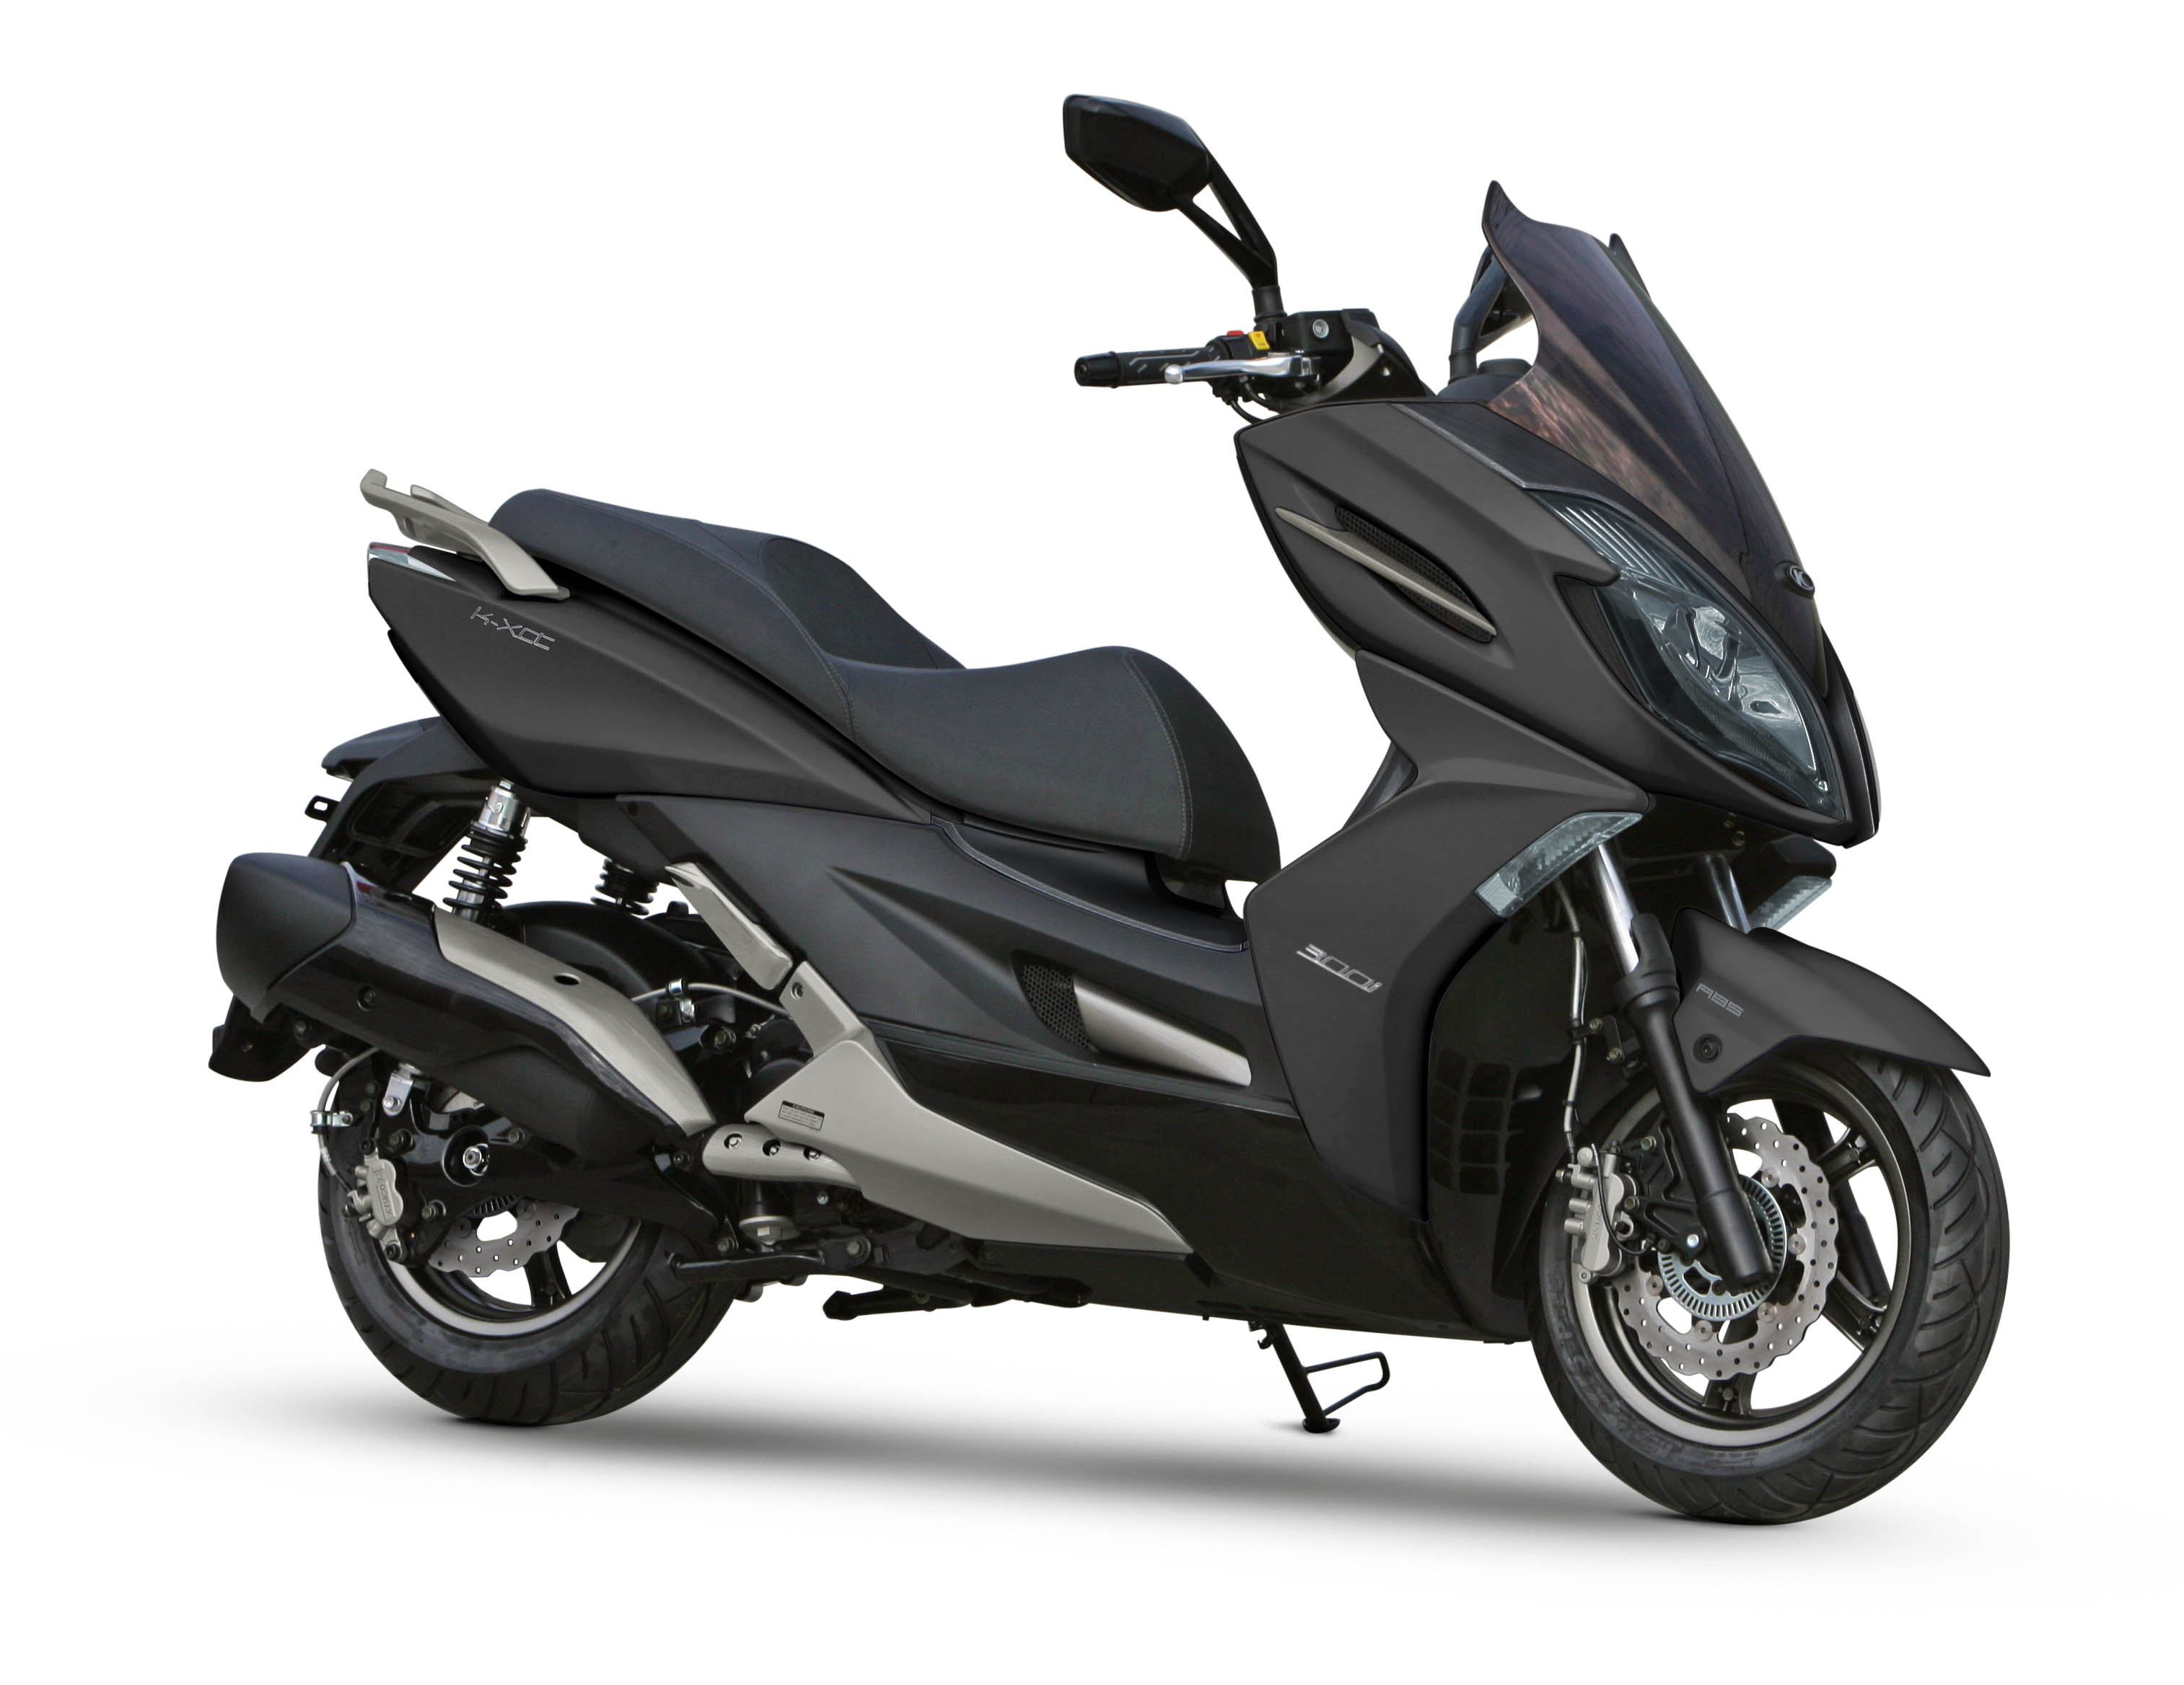 listino kymco e catalogo moto nuove kymco. Black Bedroom Furniture Sets. Home Design Ideas